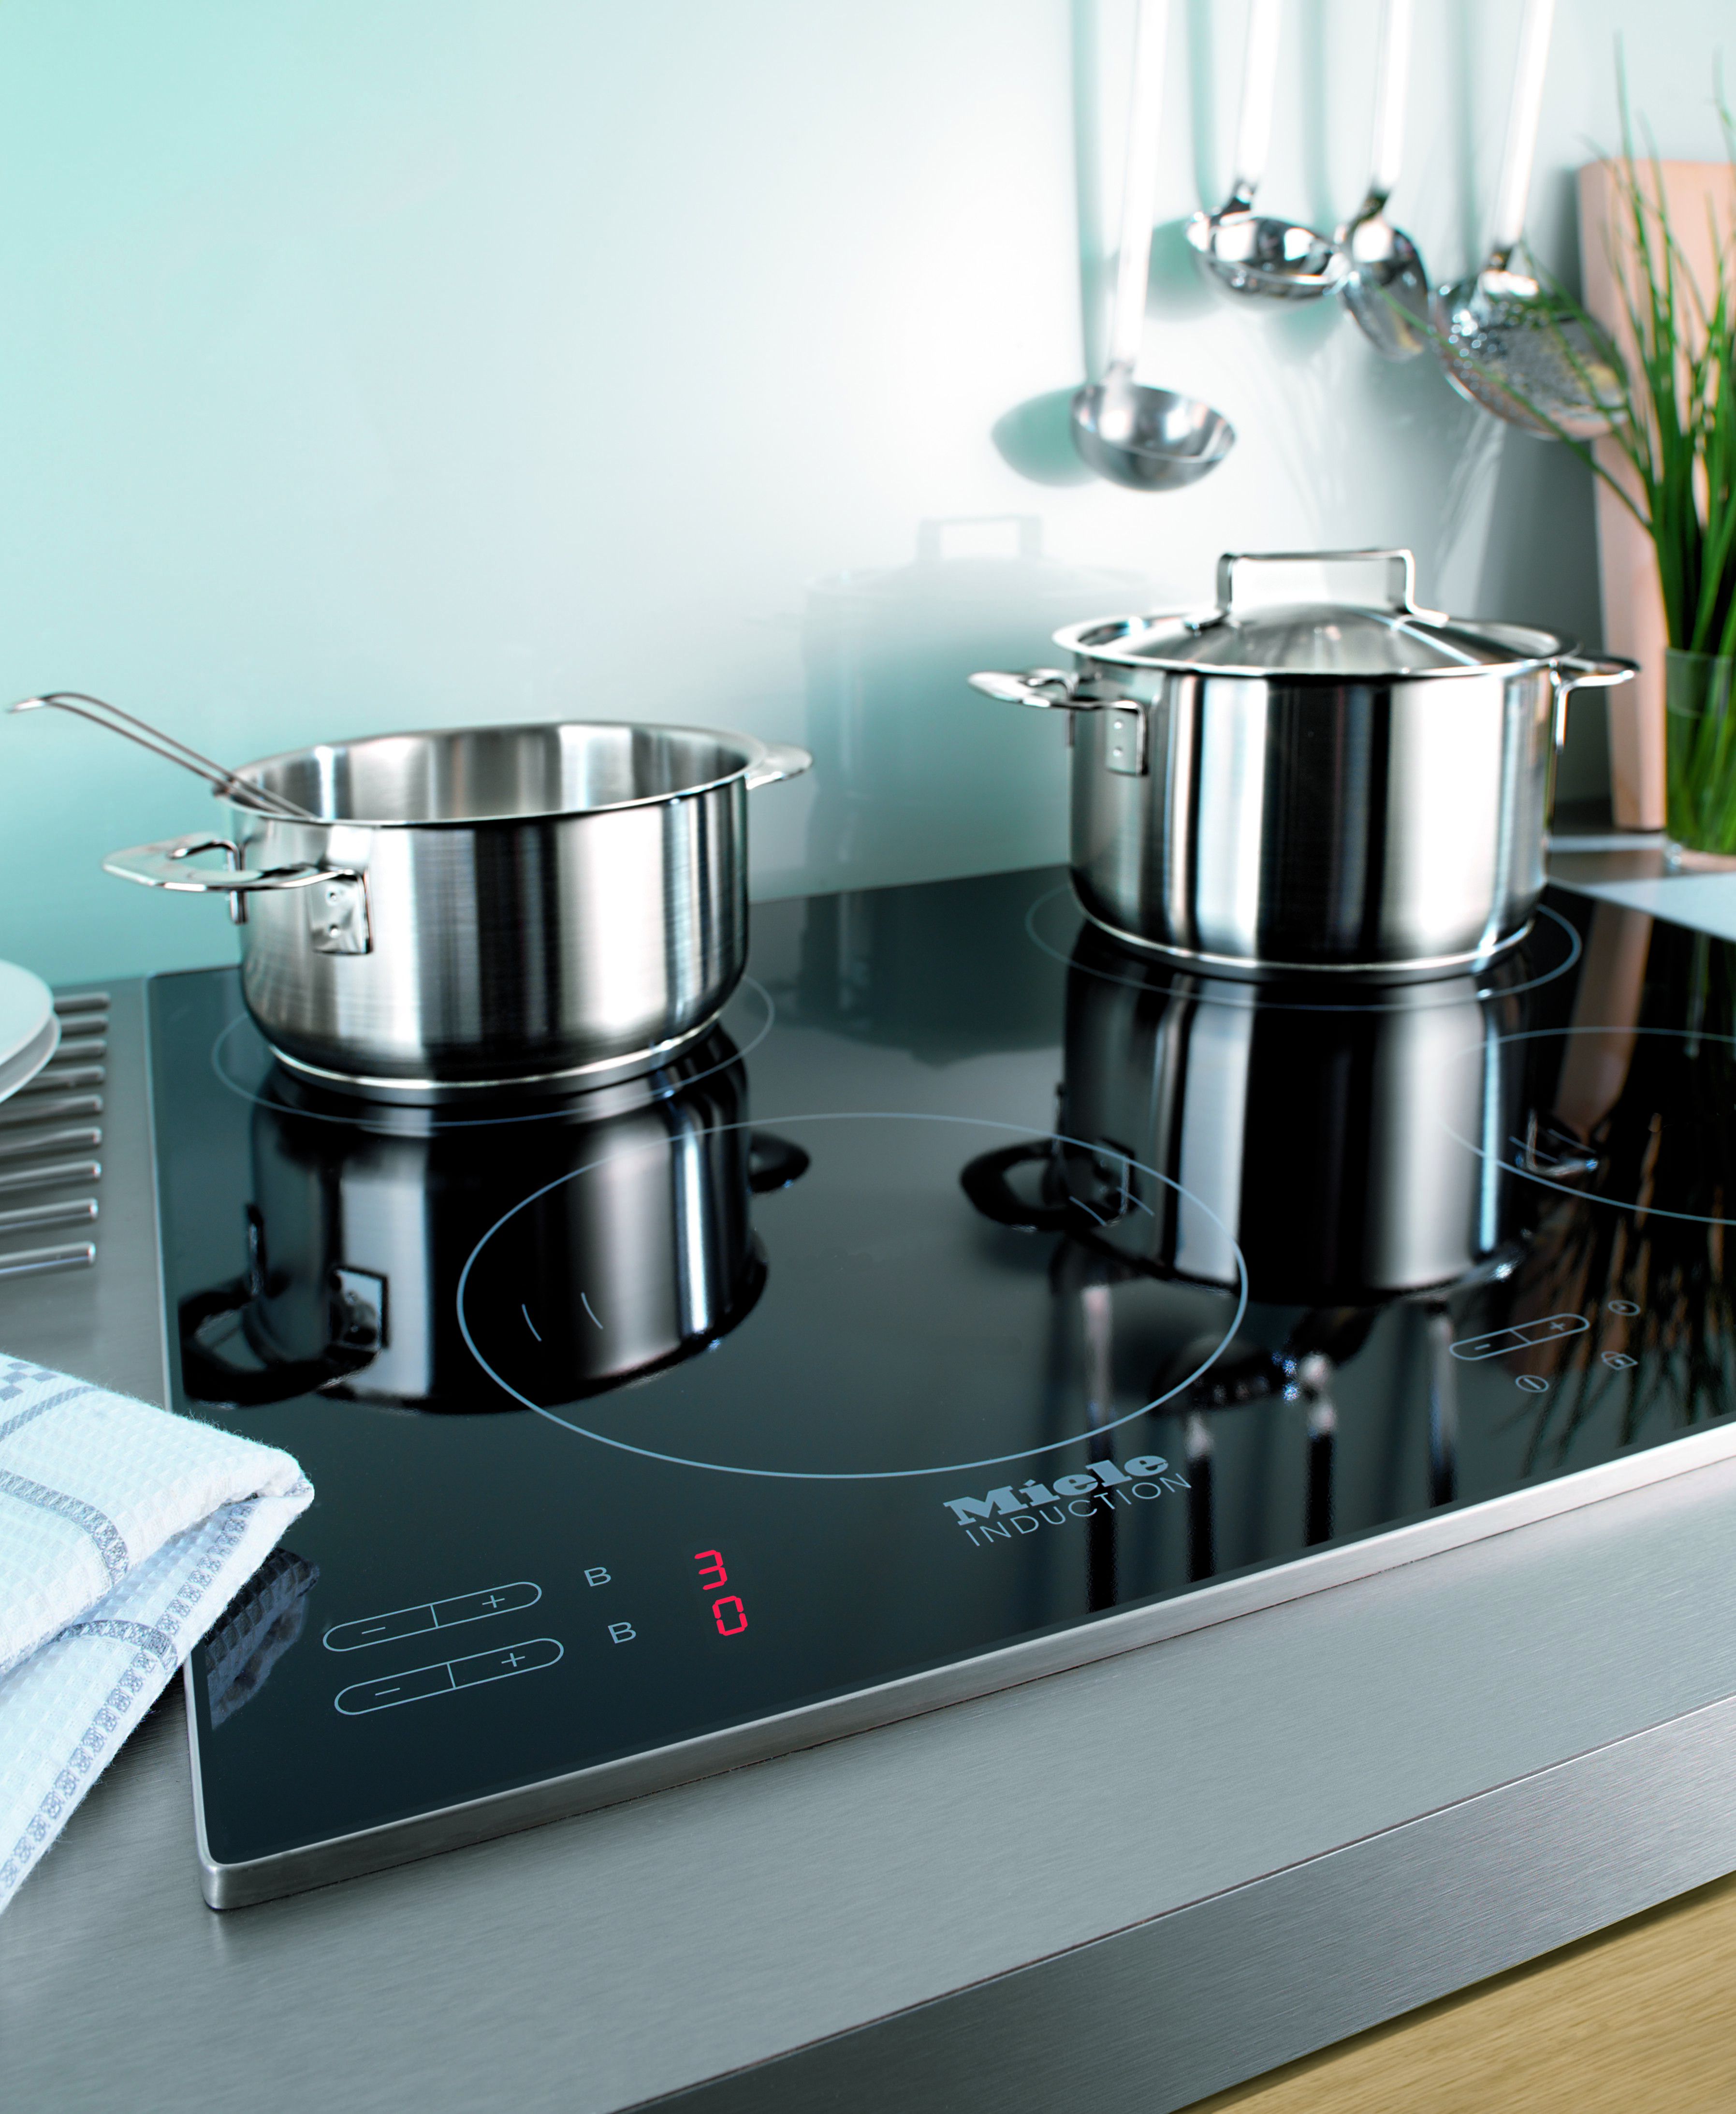 New Miele Induction Cooktop (Reviews/Ratings/Prices